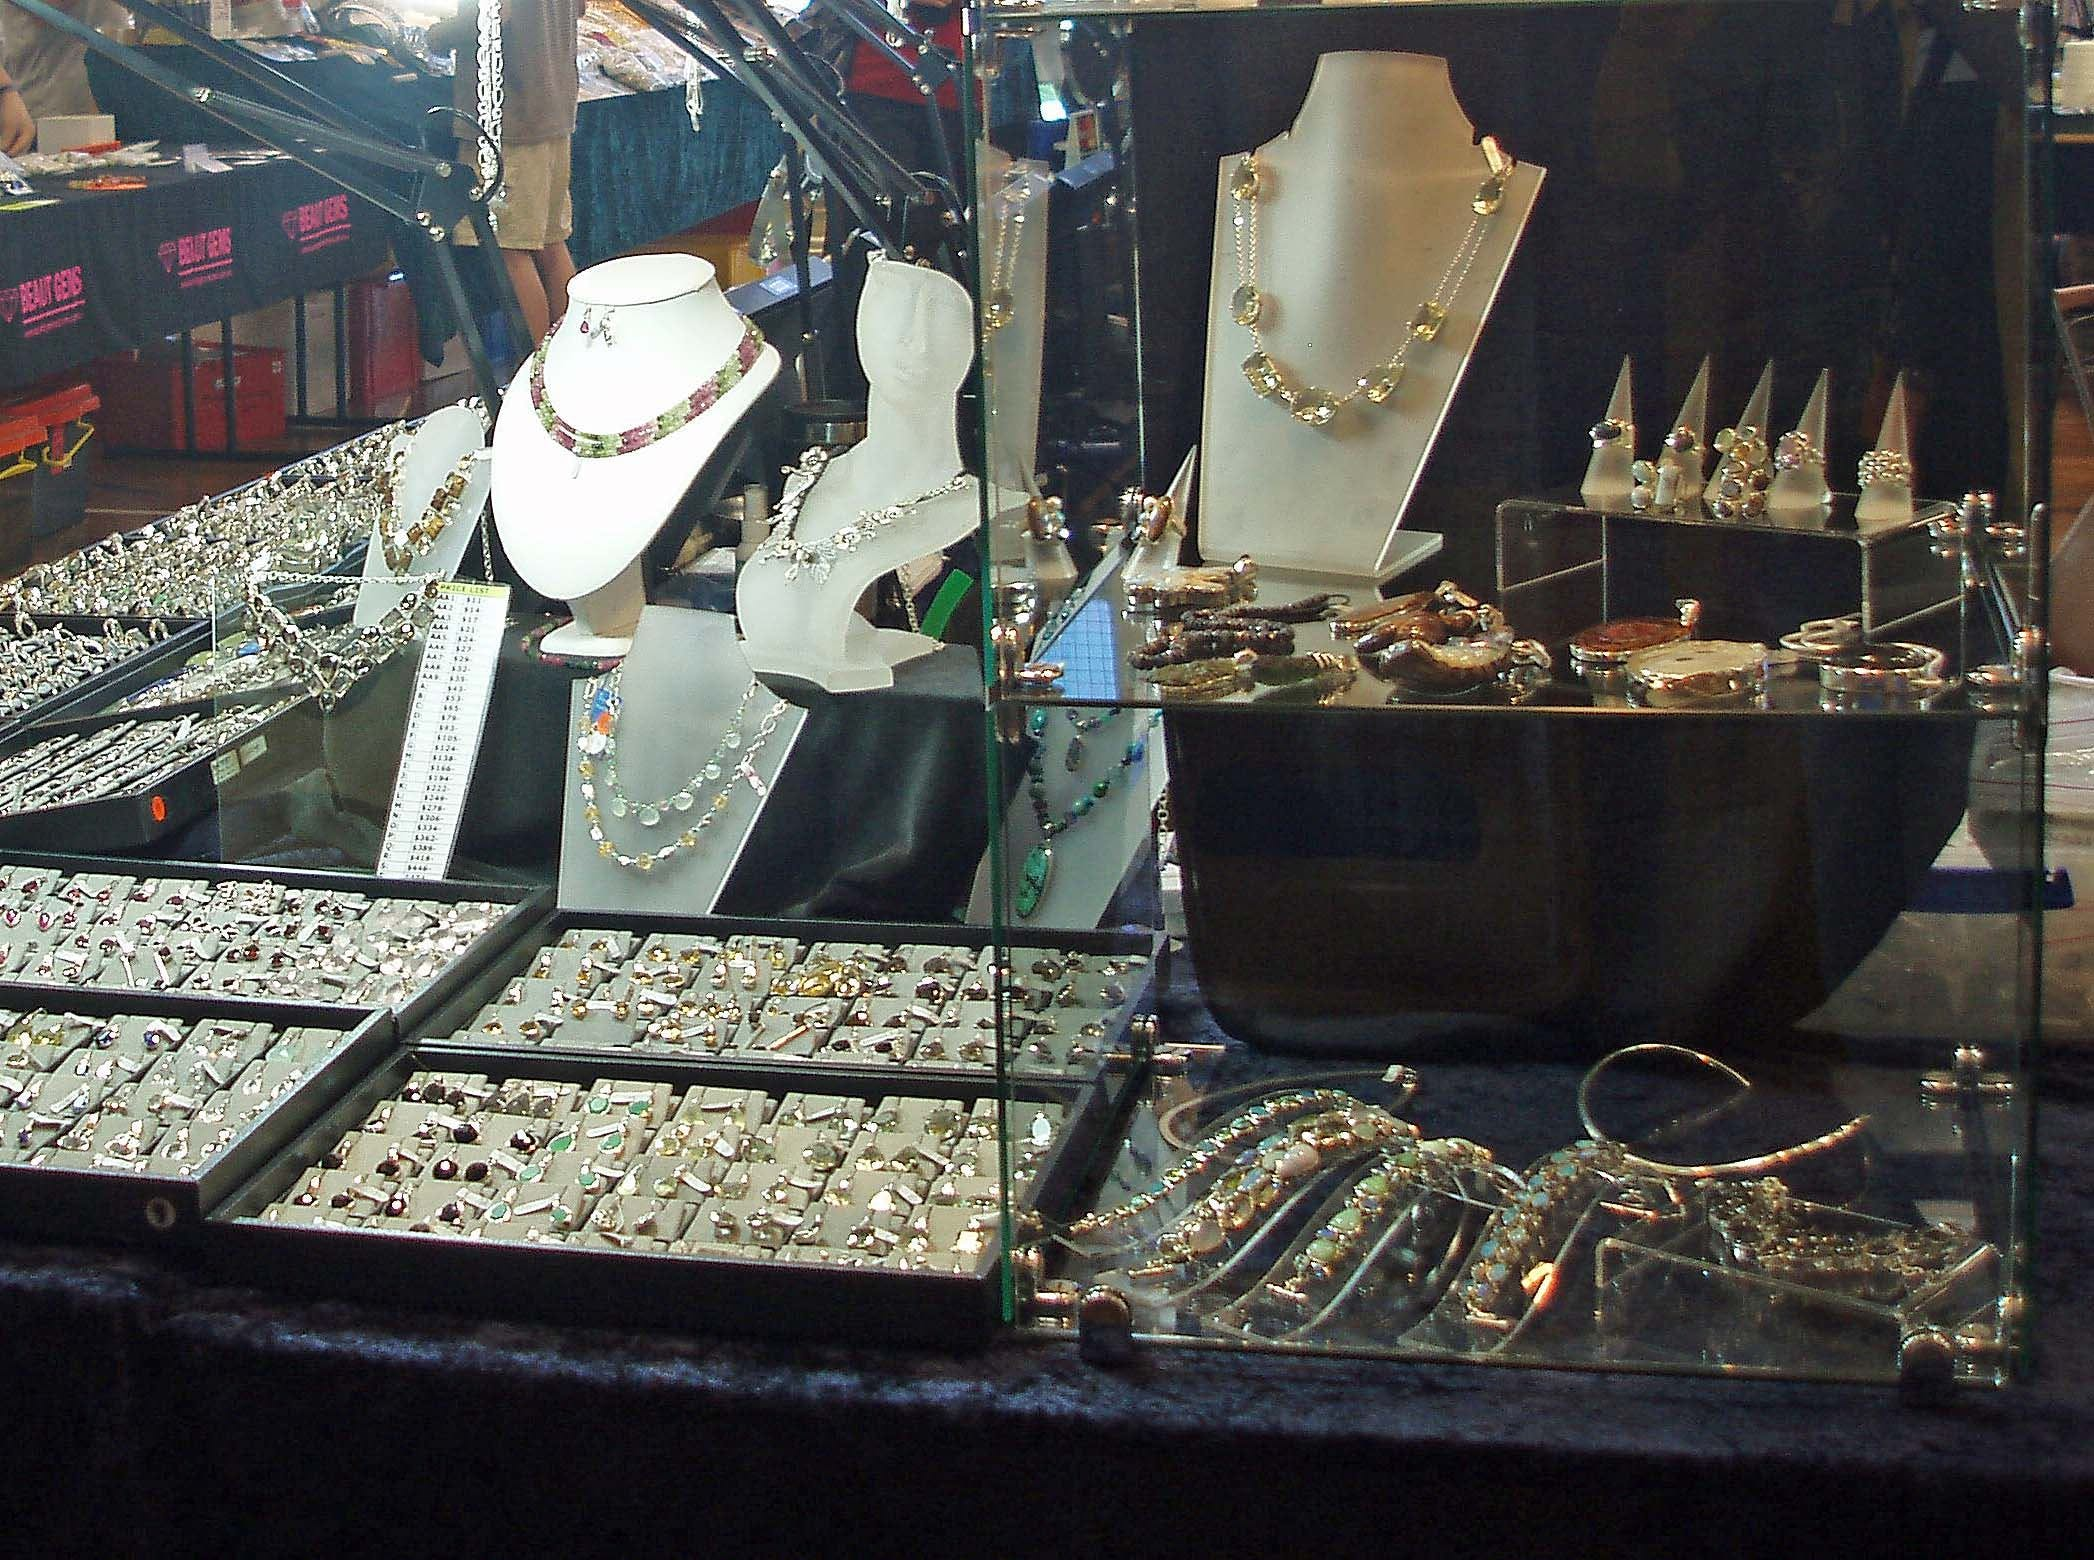 Toowoomba Gemfest - Gems and Jewellery - New South Wales Tourism